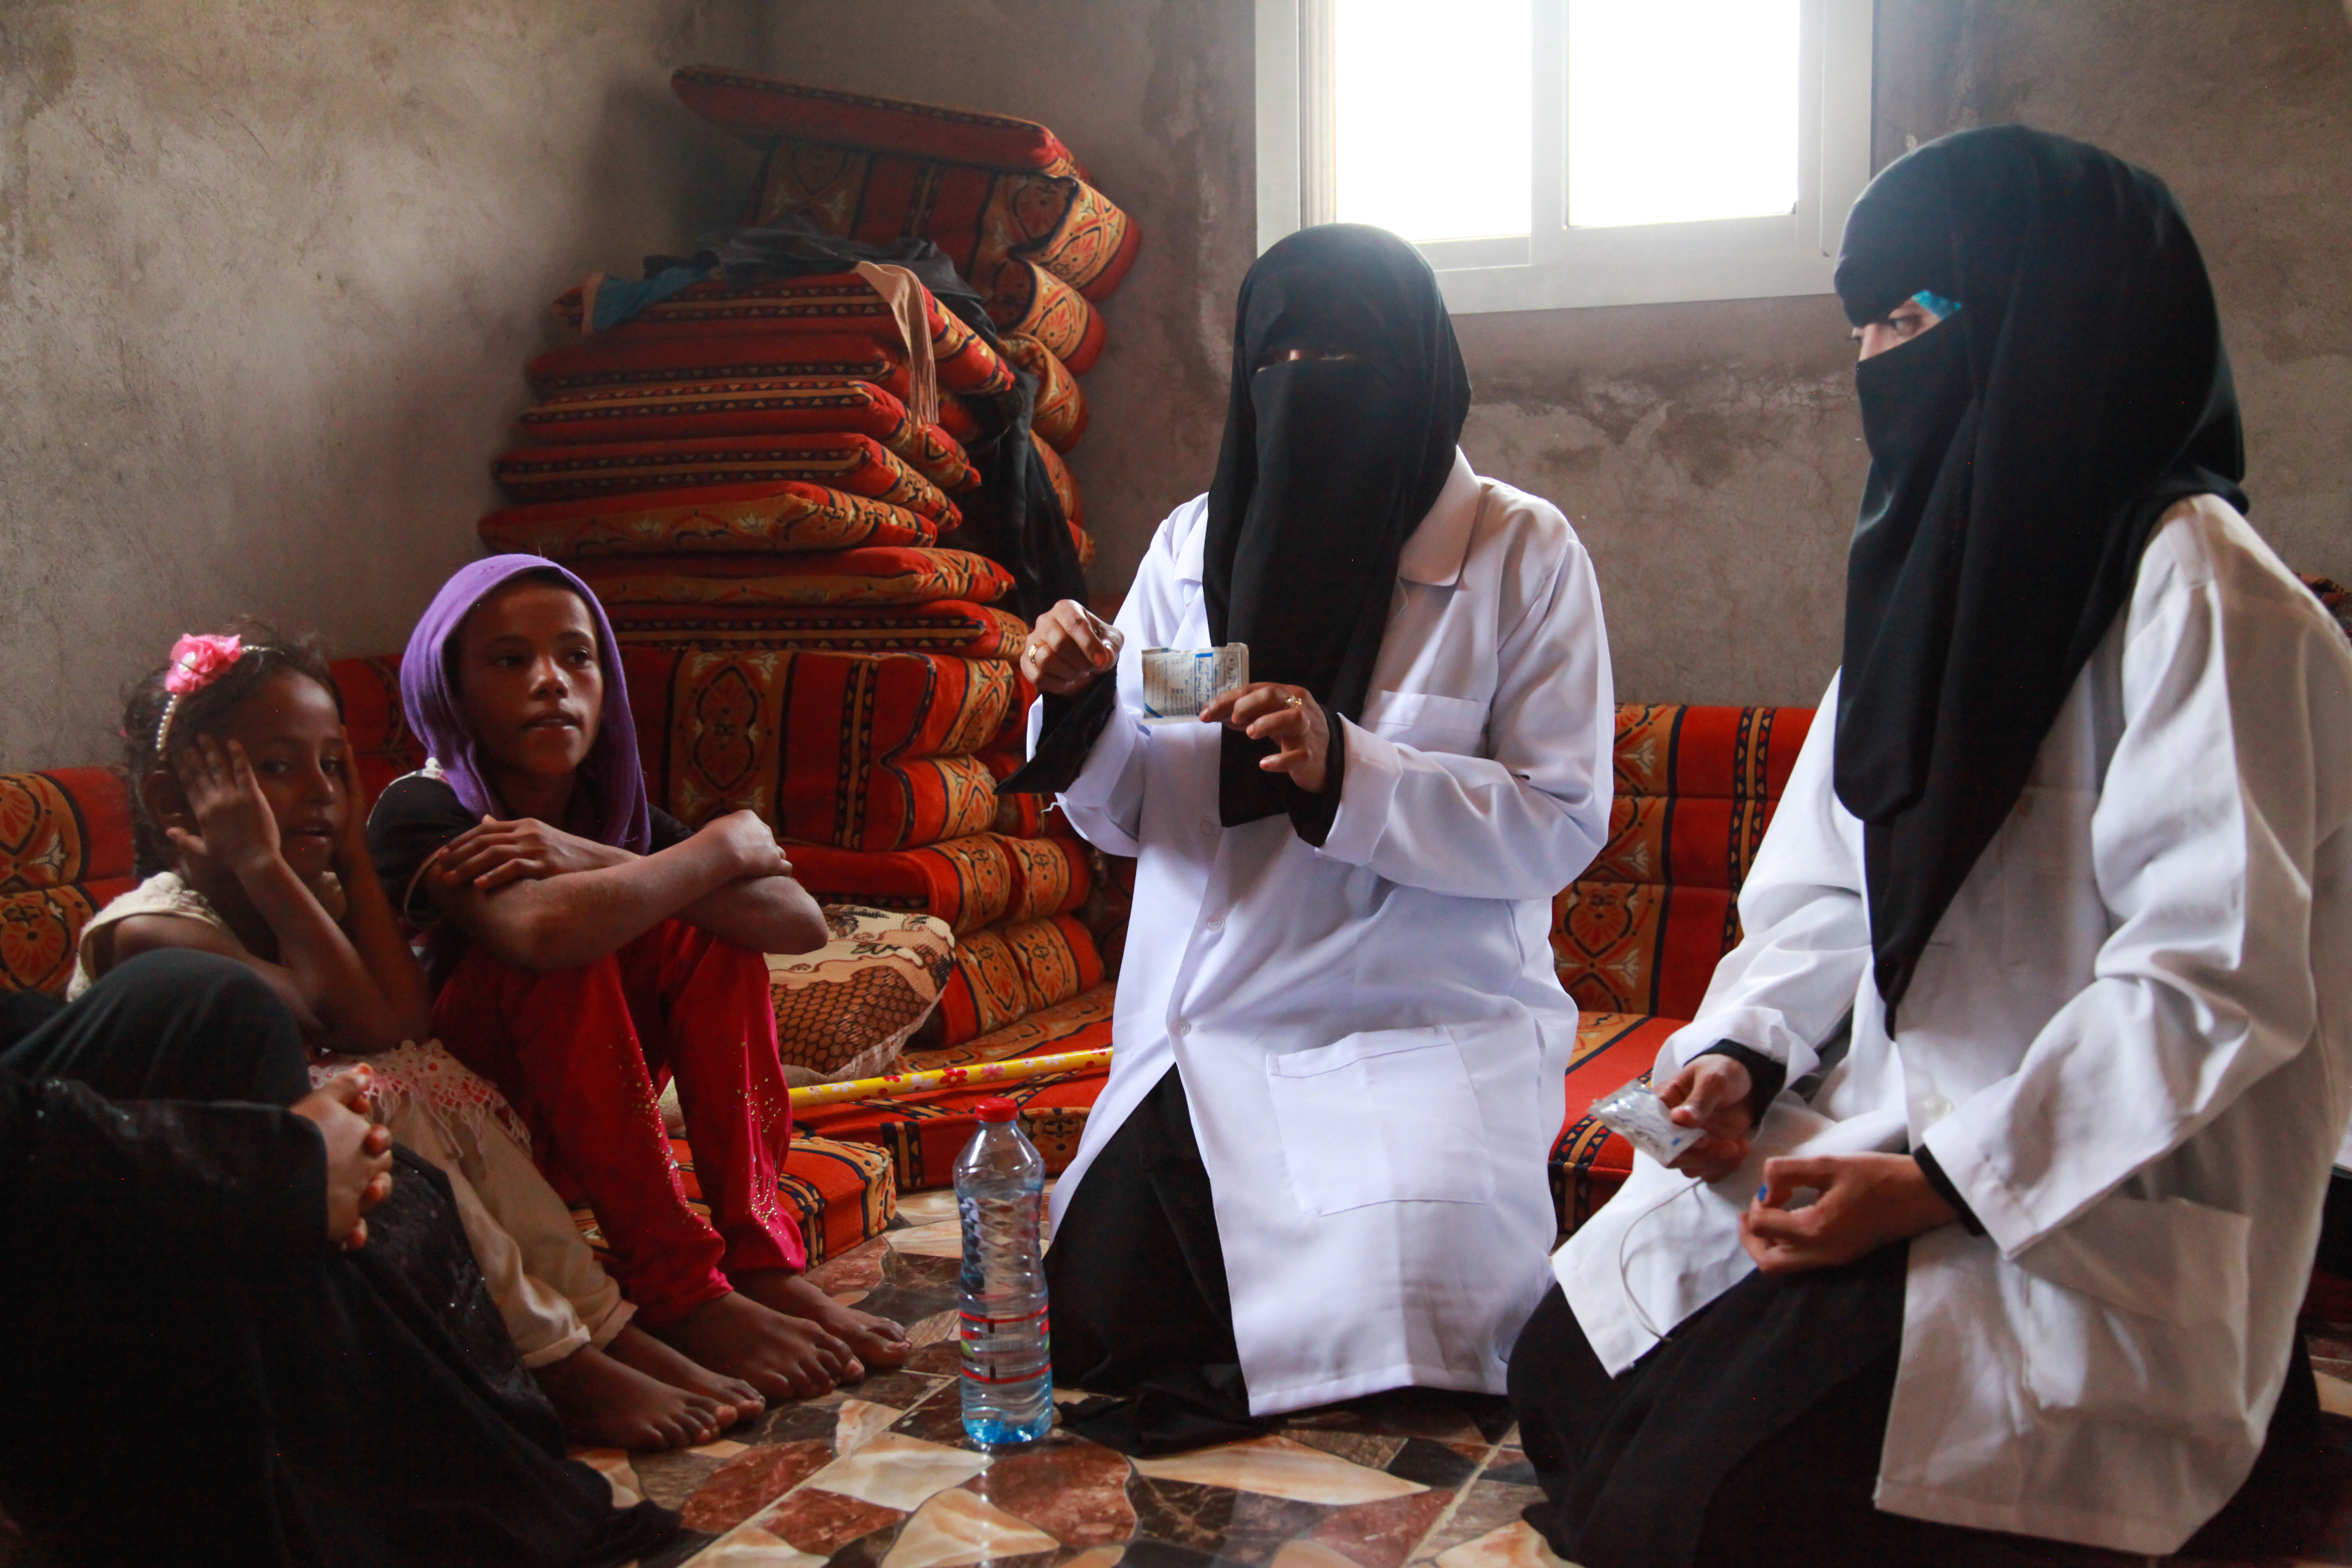 Photograph of two female medics in white coats and black hijabs tending two African women who are sitting on the floor in their home